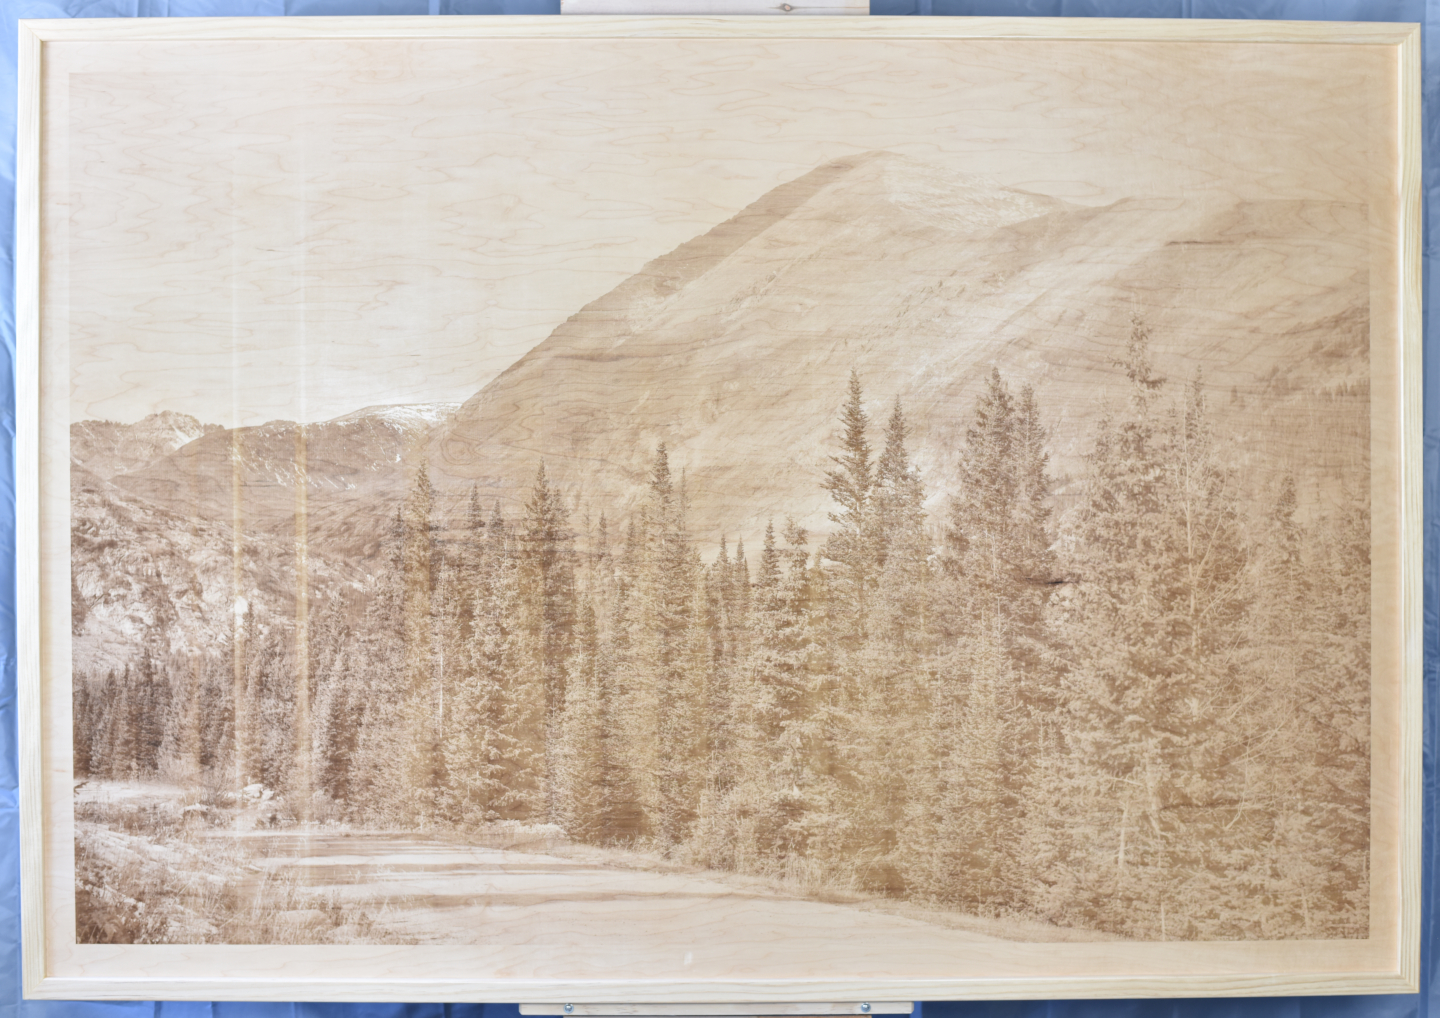 A wood burning (digital pyrograph) of the South side of Quandary Peak in Colorado on a windy, cloudy, and snowy Fall day.